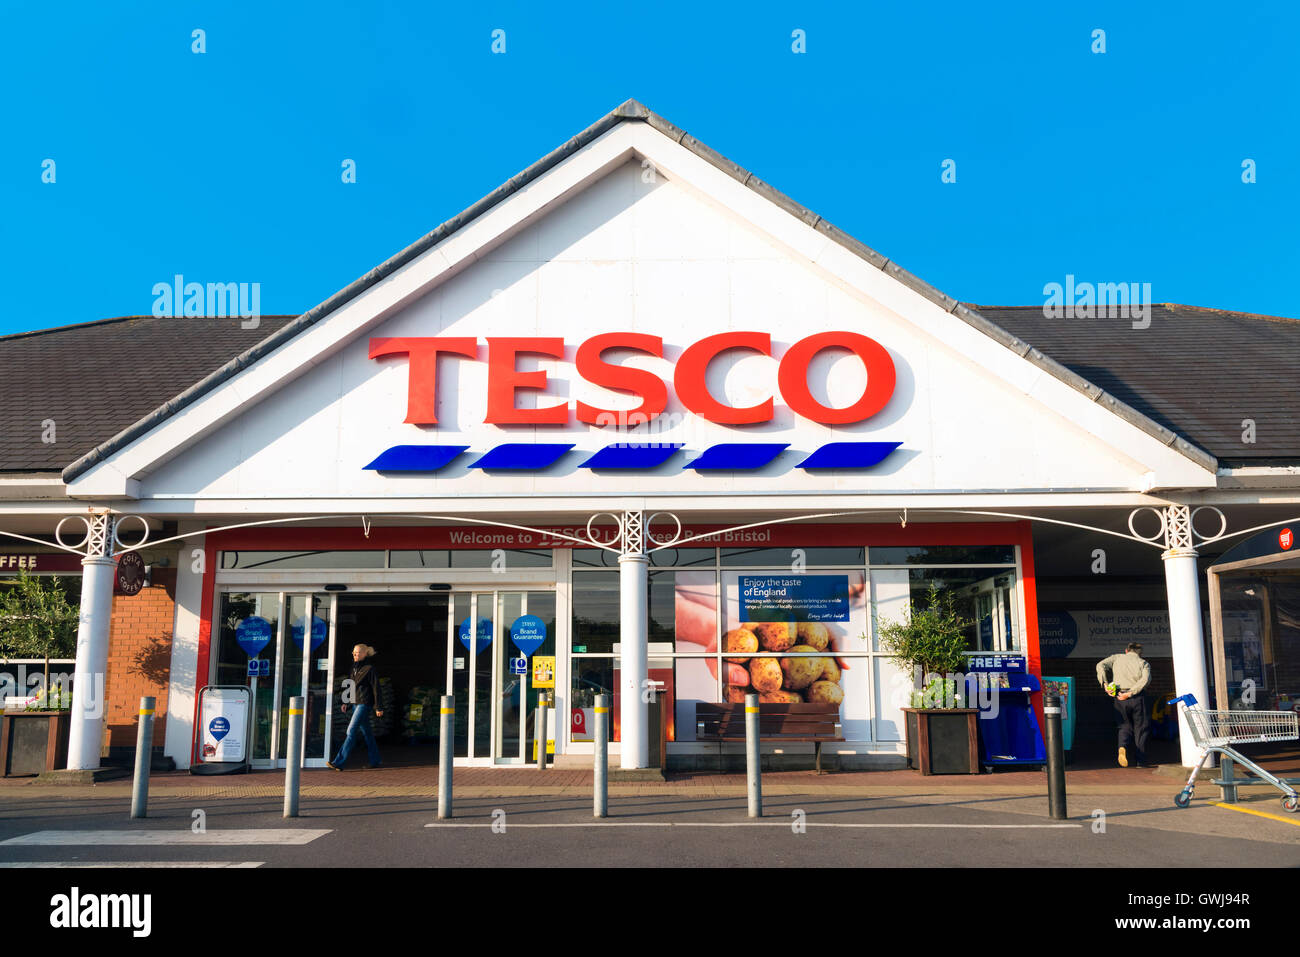 Tesco supermarket, UK. Stock Photo